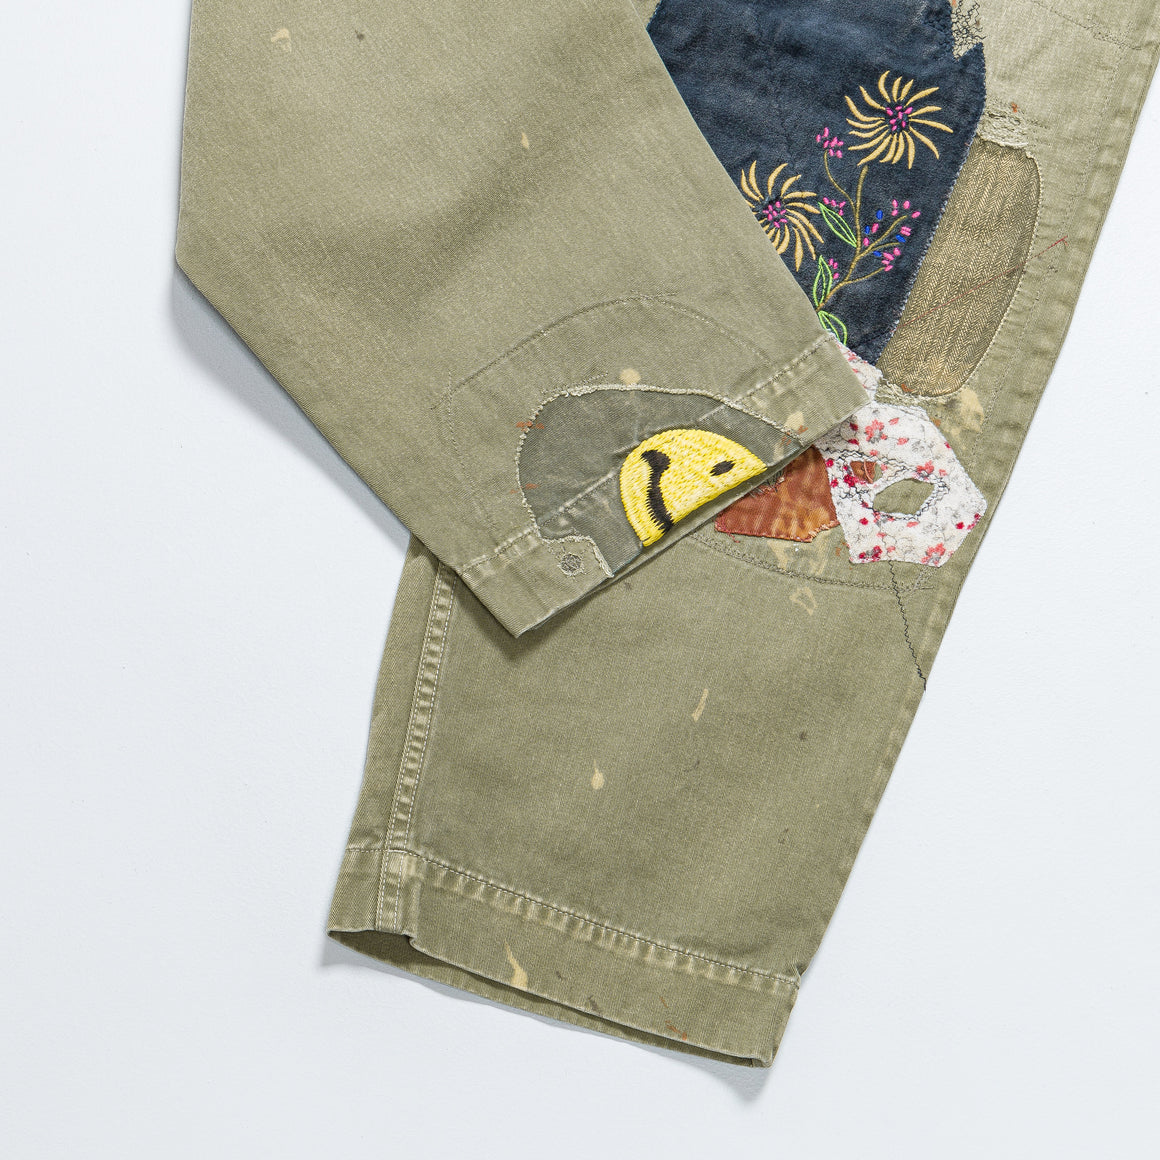 Kapital - KATSURAGI Cotton High Waisted NIME Pants (GypsyRemake) - Khaki - Up There